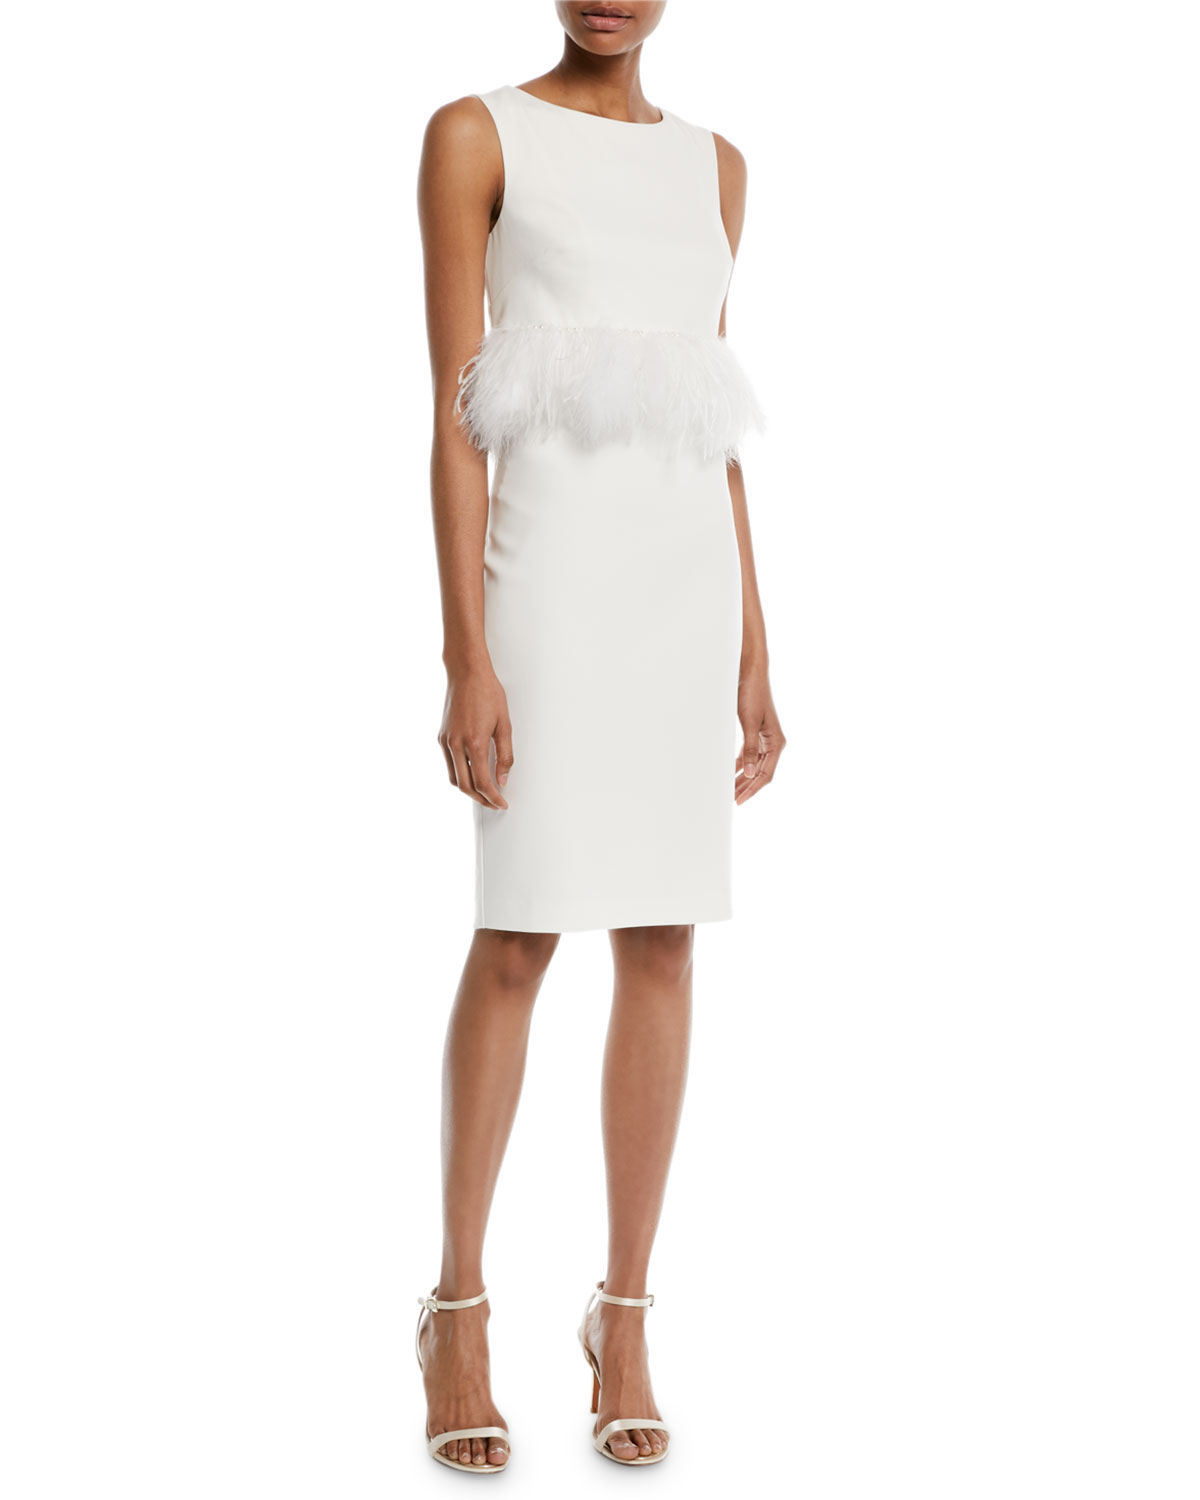 Badgley Mischka Collection Sleeveless Sheath Cocktail Dress w/ Popover Feathers